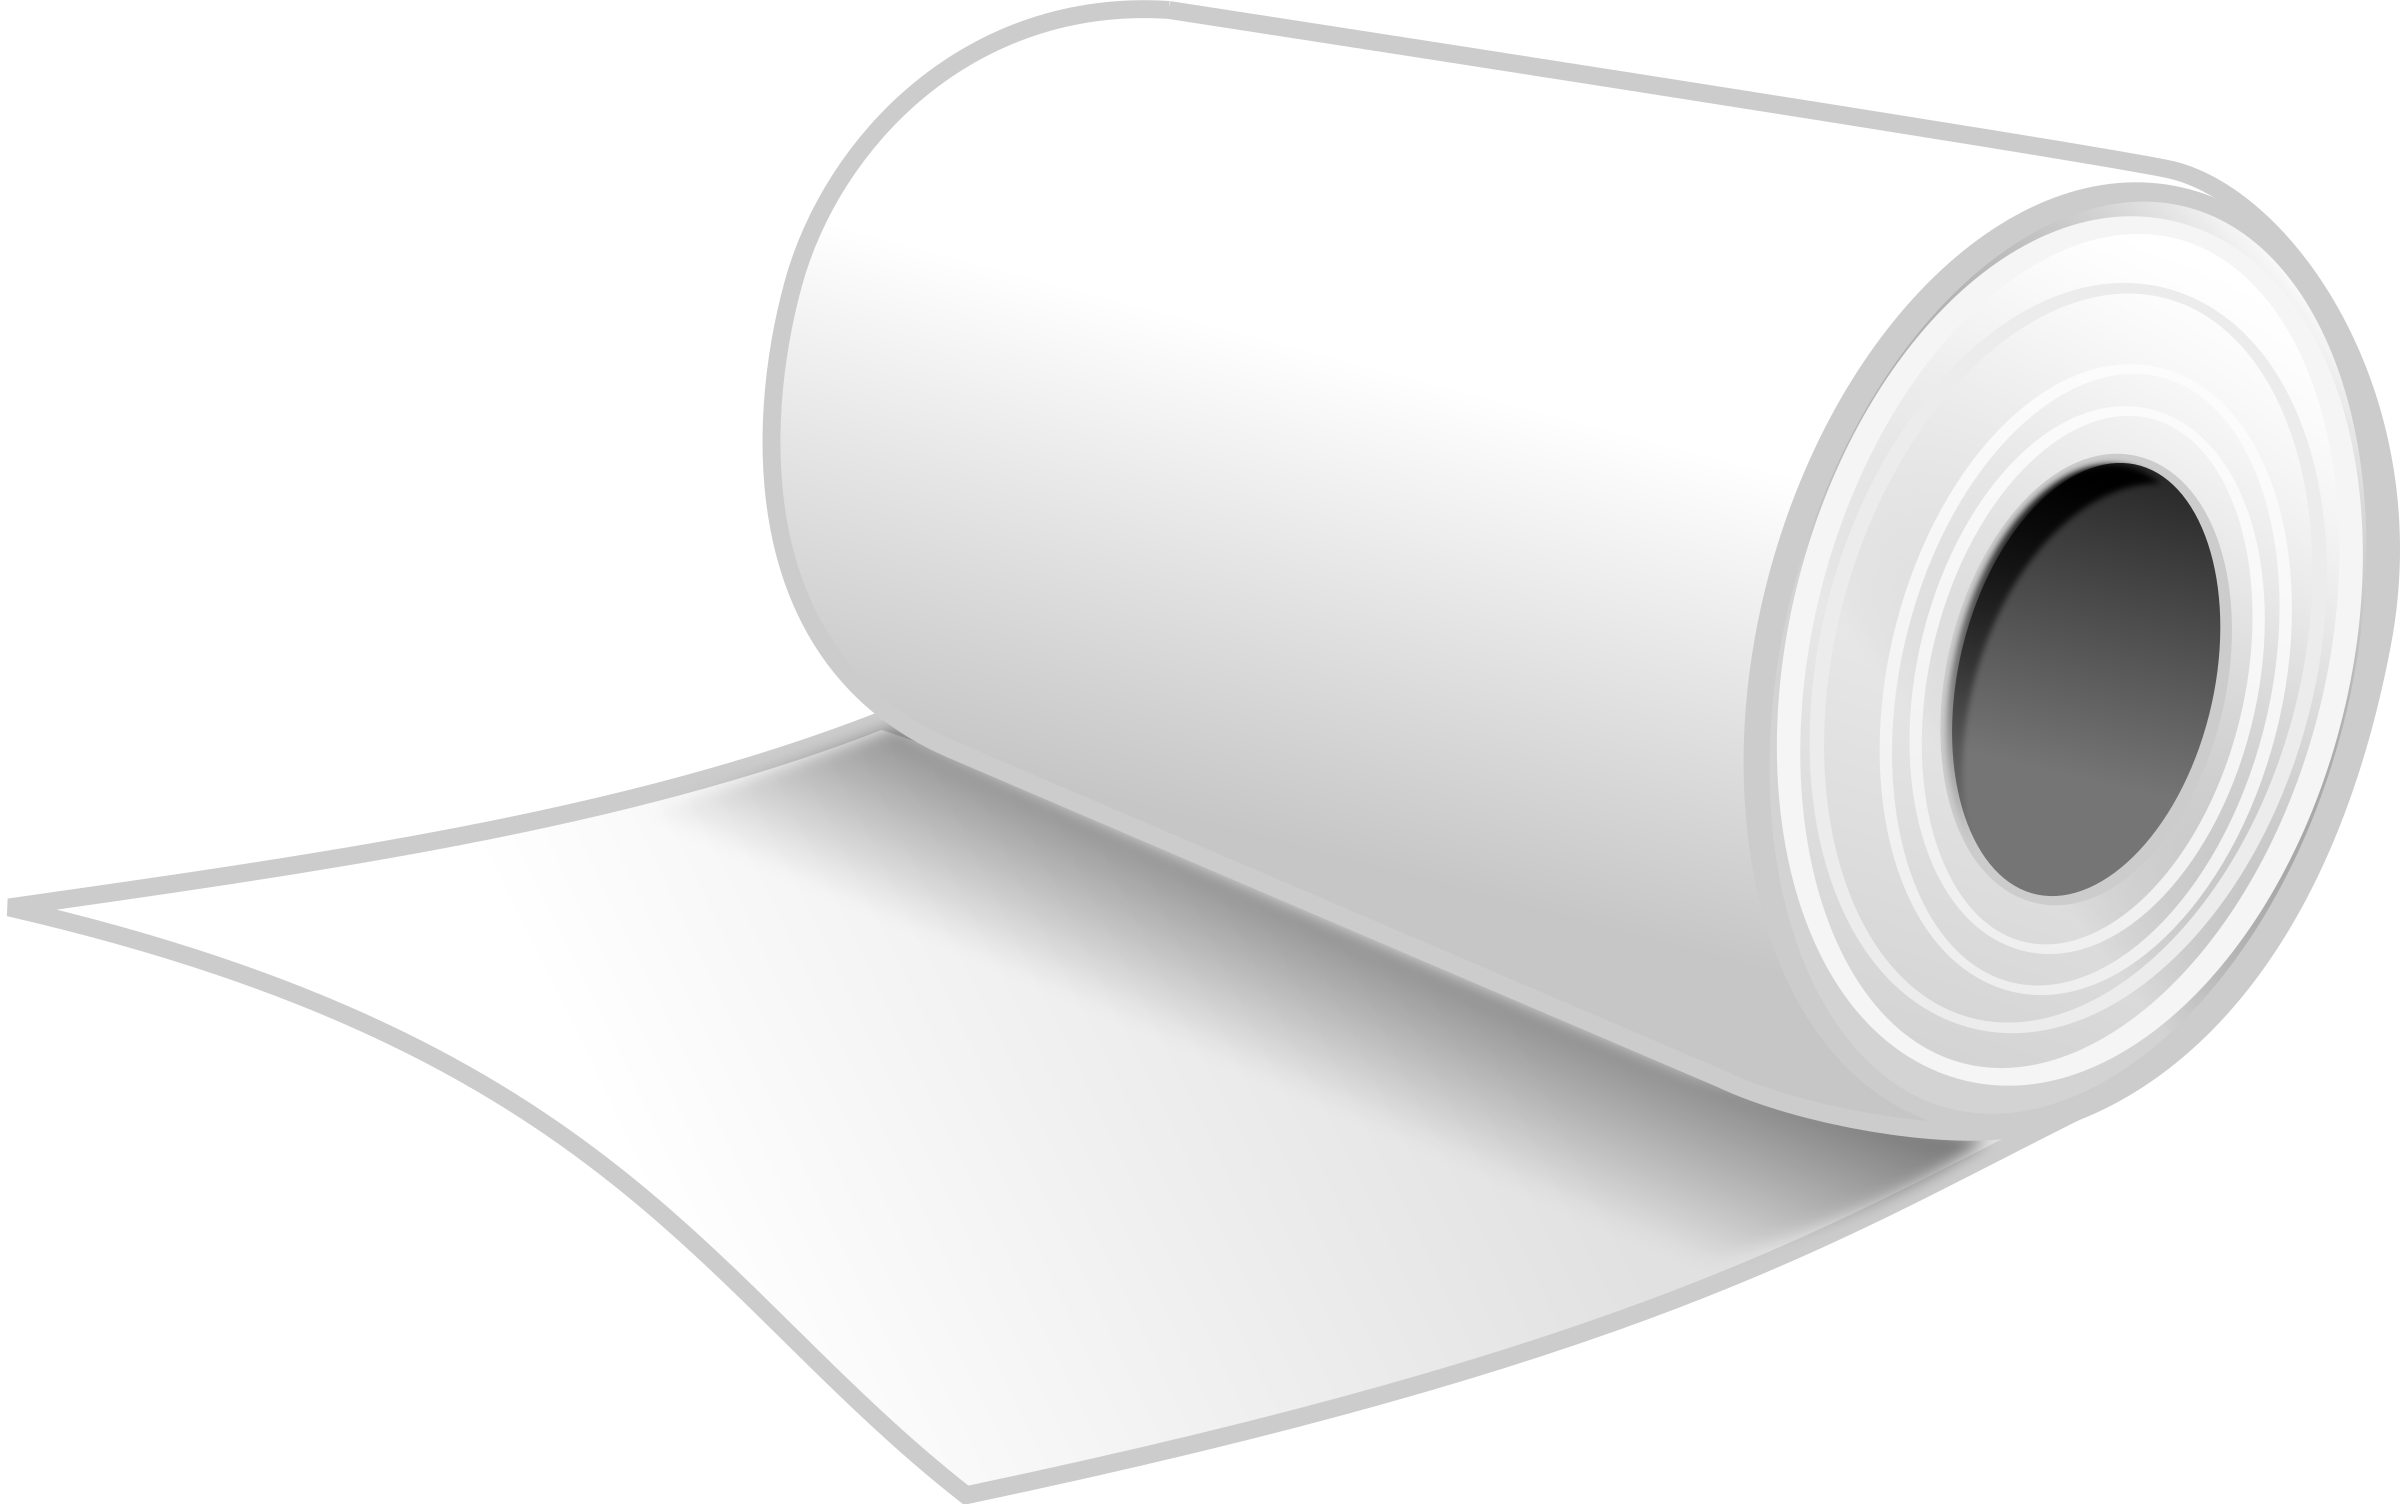 Clipart roll of paper clipground clipart paper roll malvernweather Choice Image